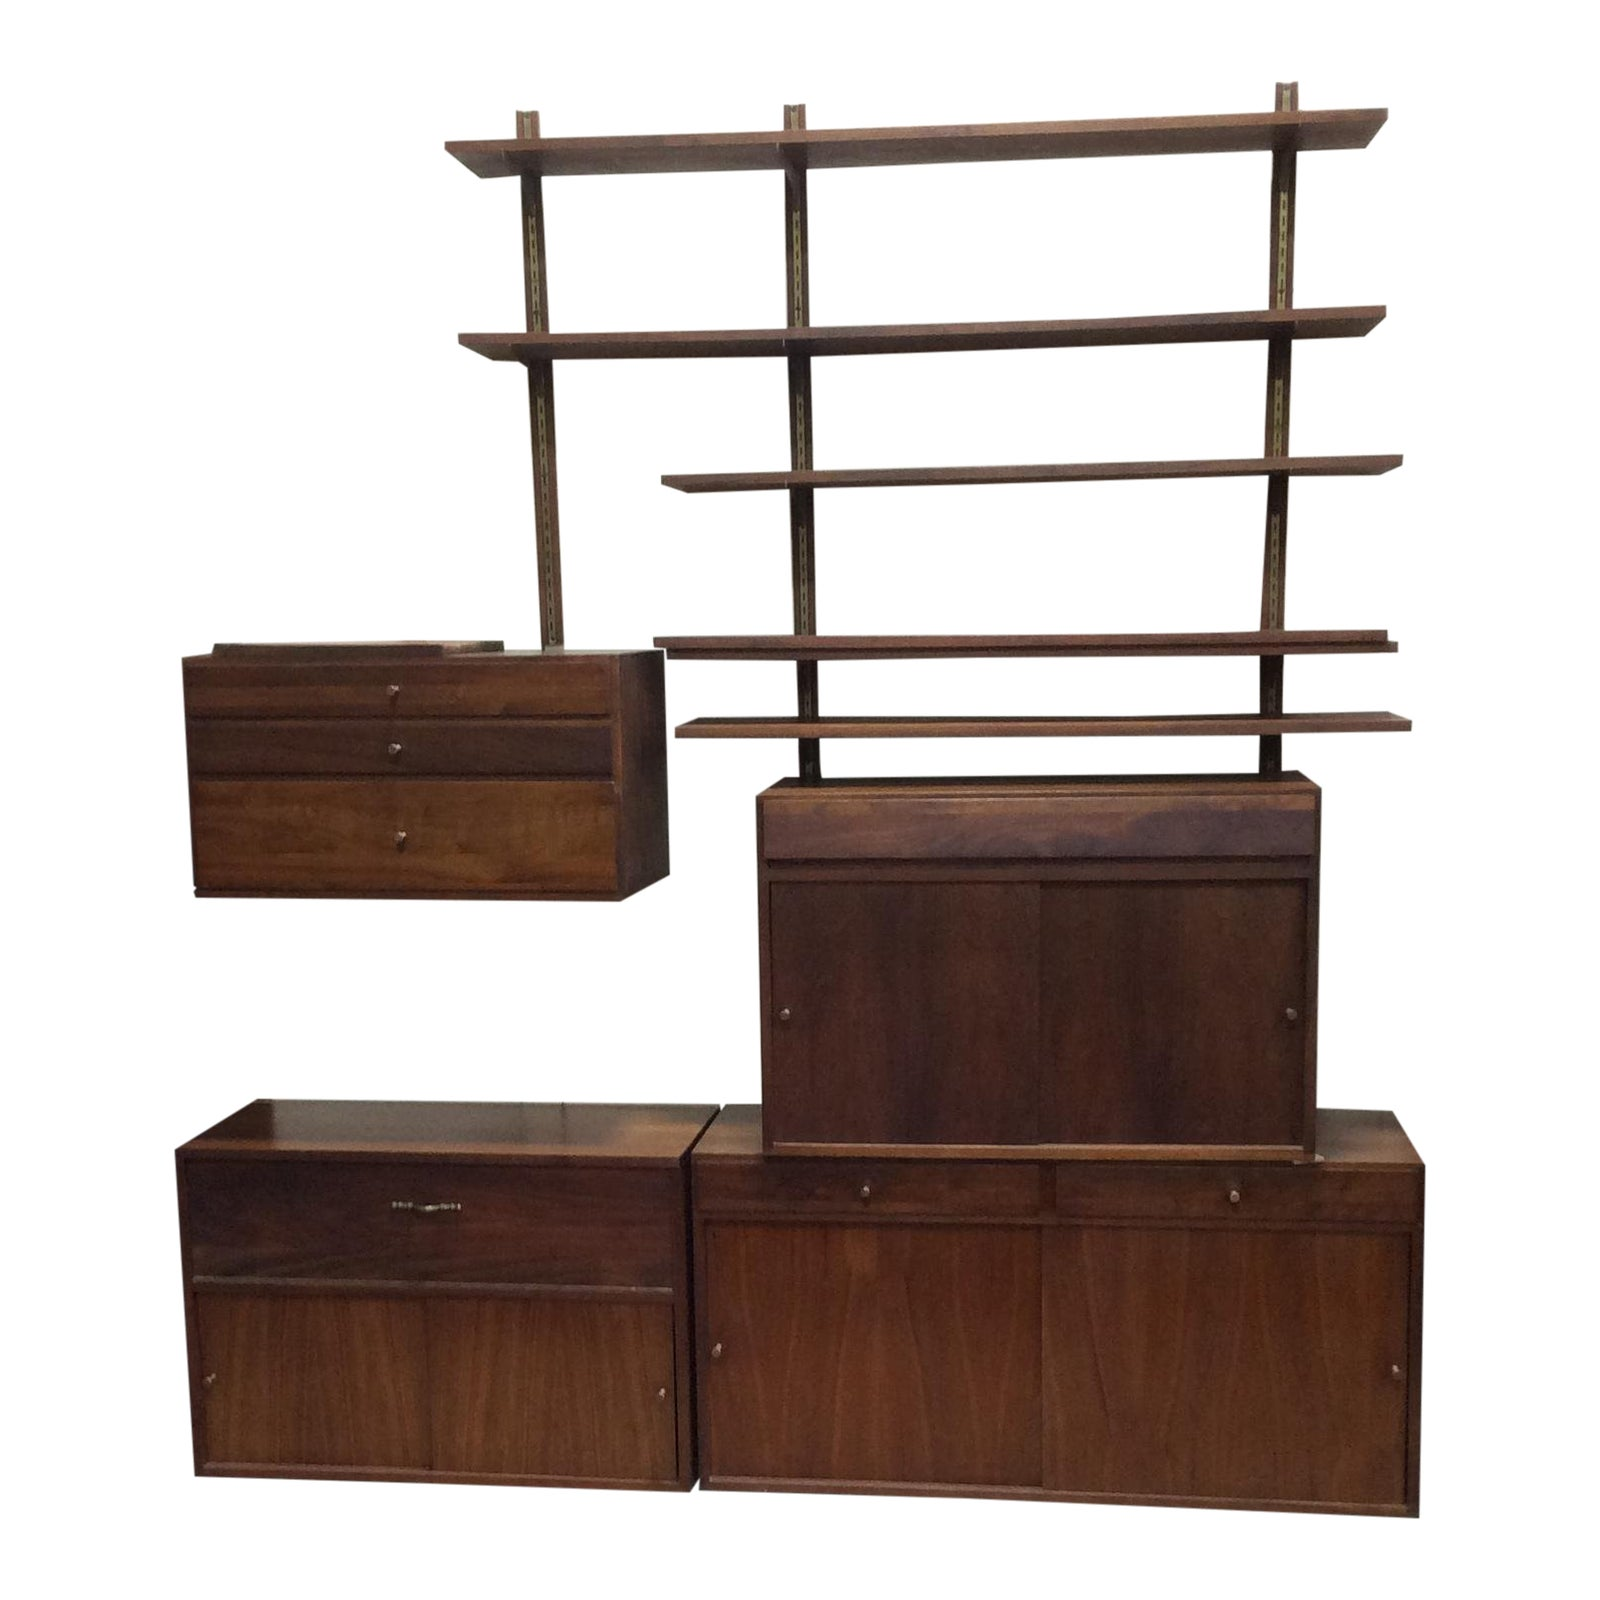 Paul cado style walnut shelving and wall cabinet system chairish